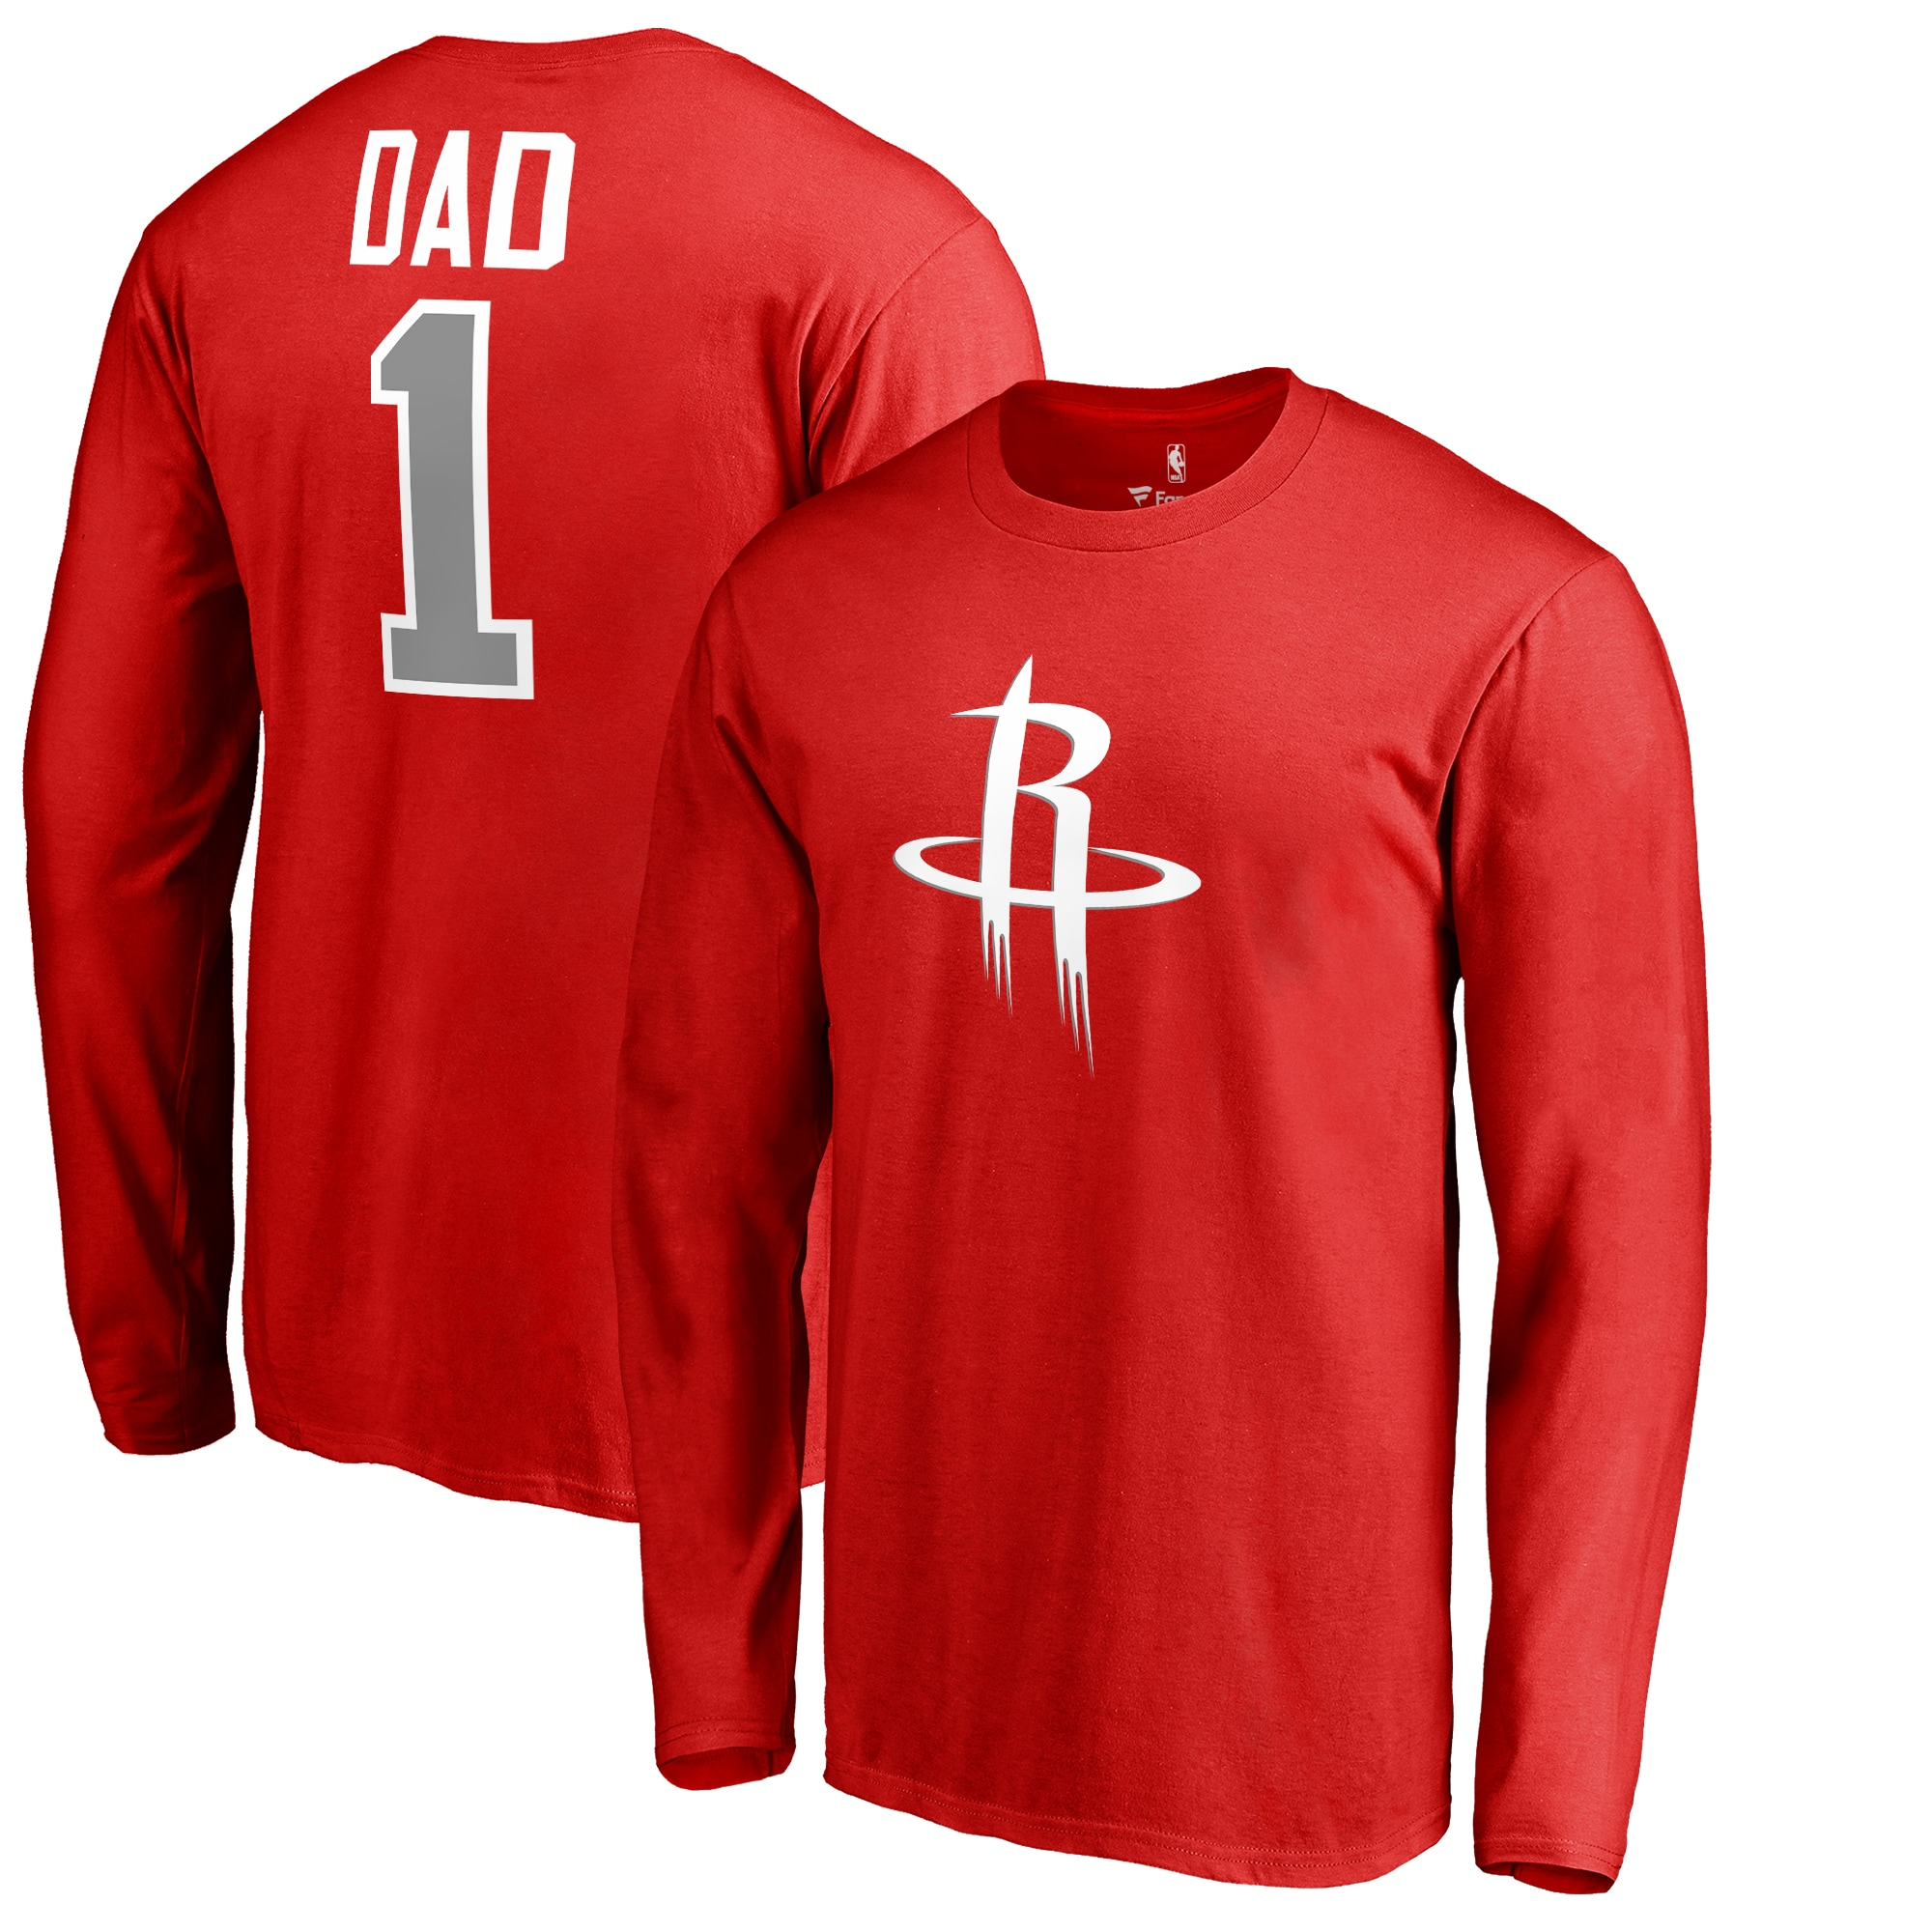 Houston Rockets Fanatics Branded Big & Tall #1 Dad Long Sleeve T-Shirt - Red